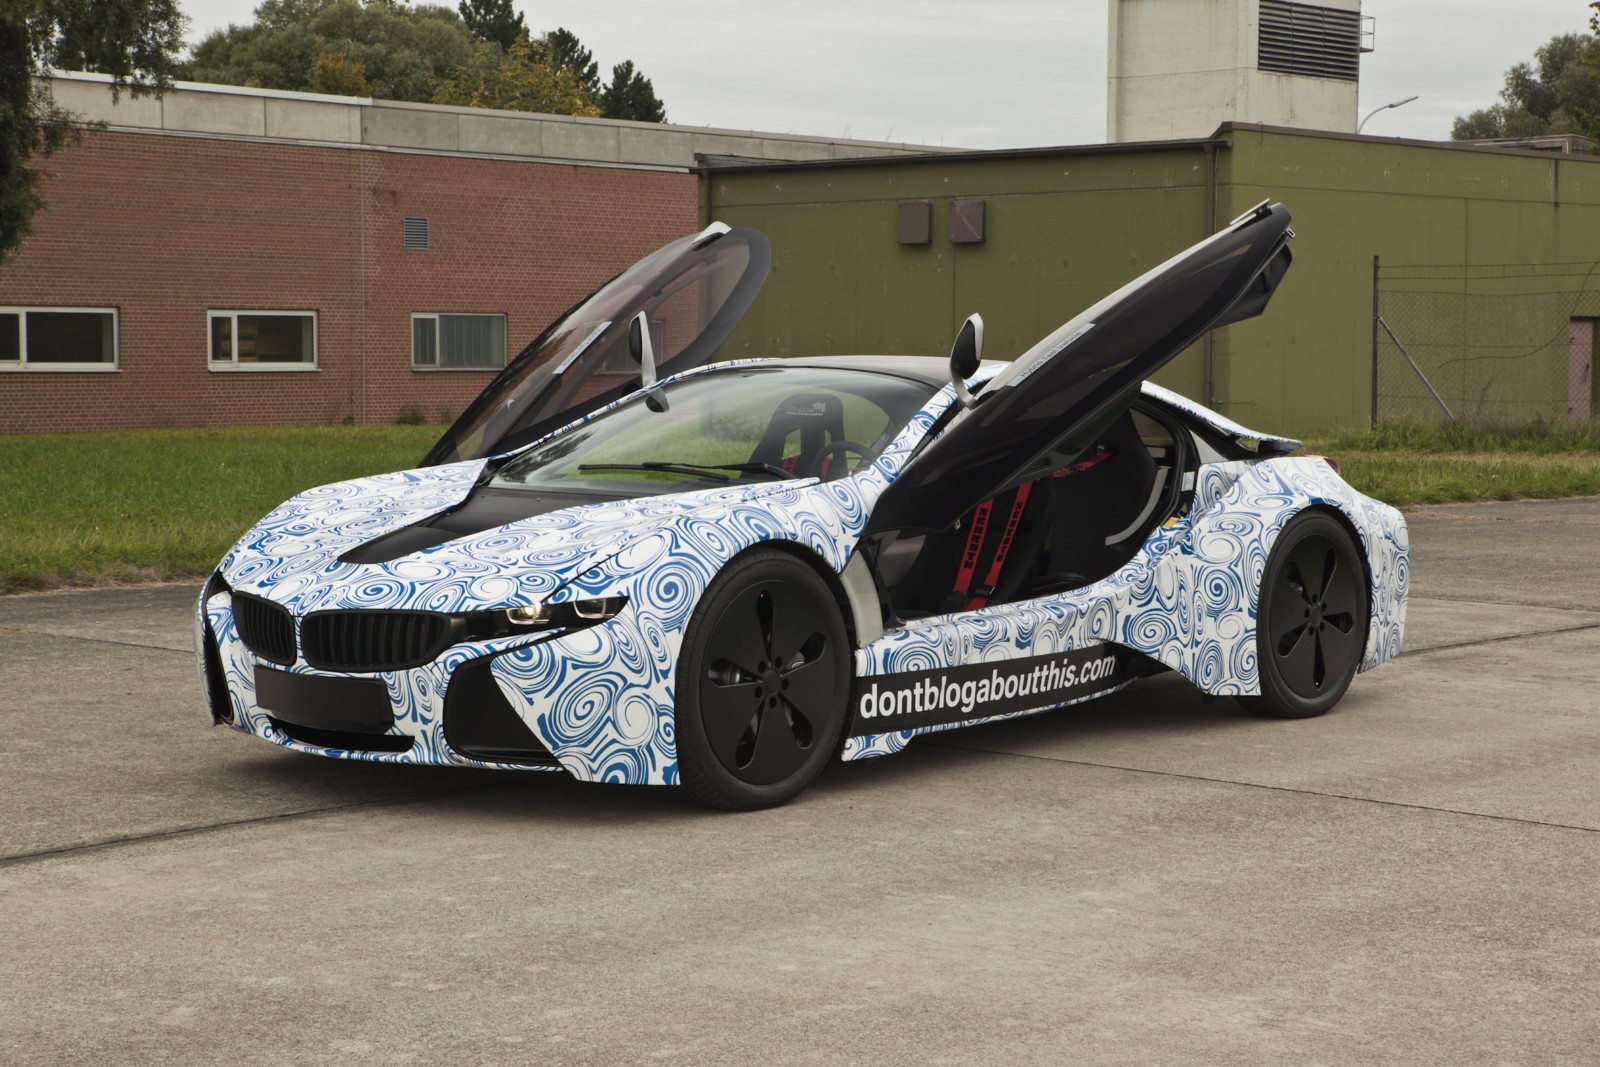 Bmw To Build Vision Efficientdynamics At Leipzig Plant Name Has Yet To Be Decided